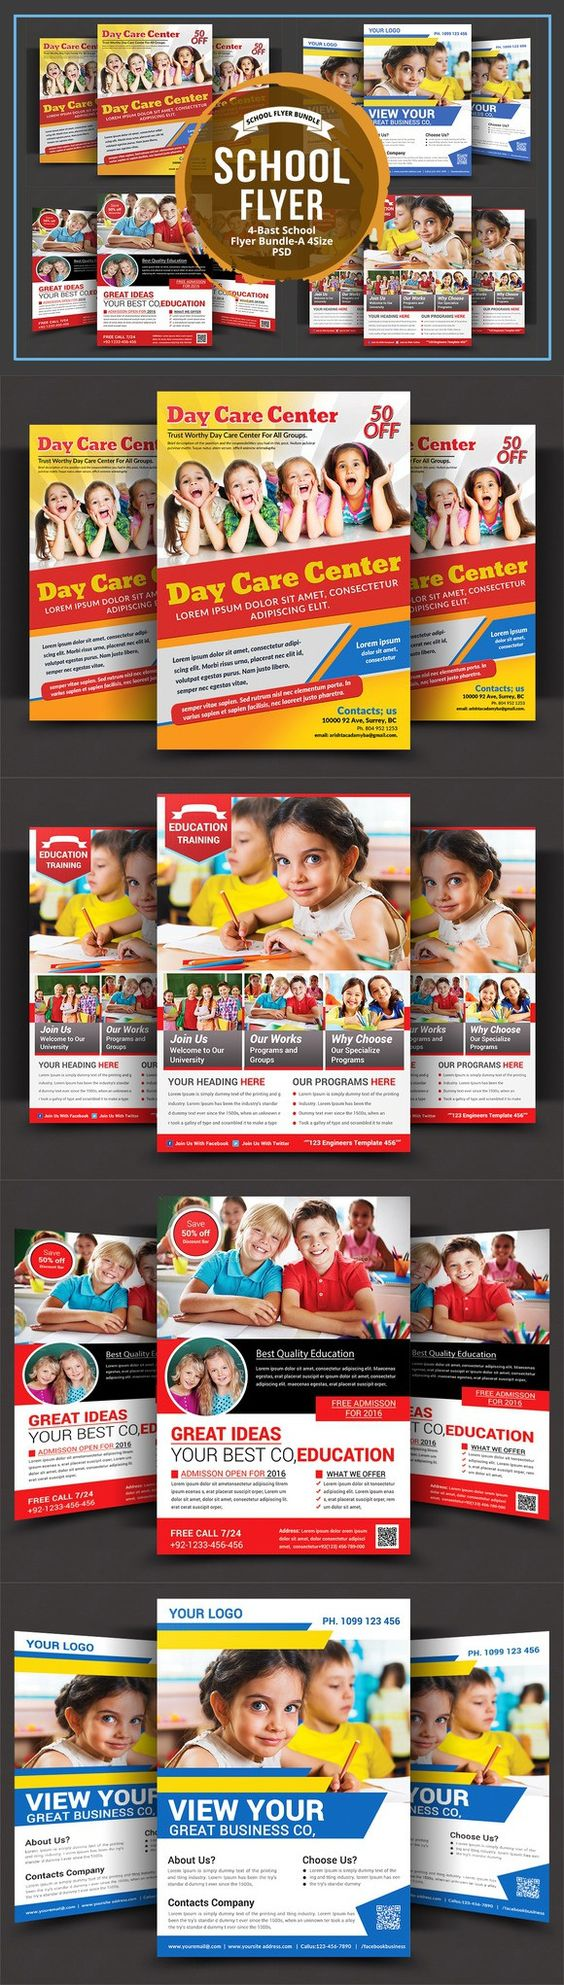 daycare flyer bundle